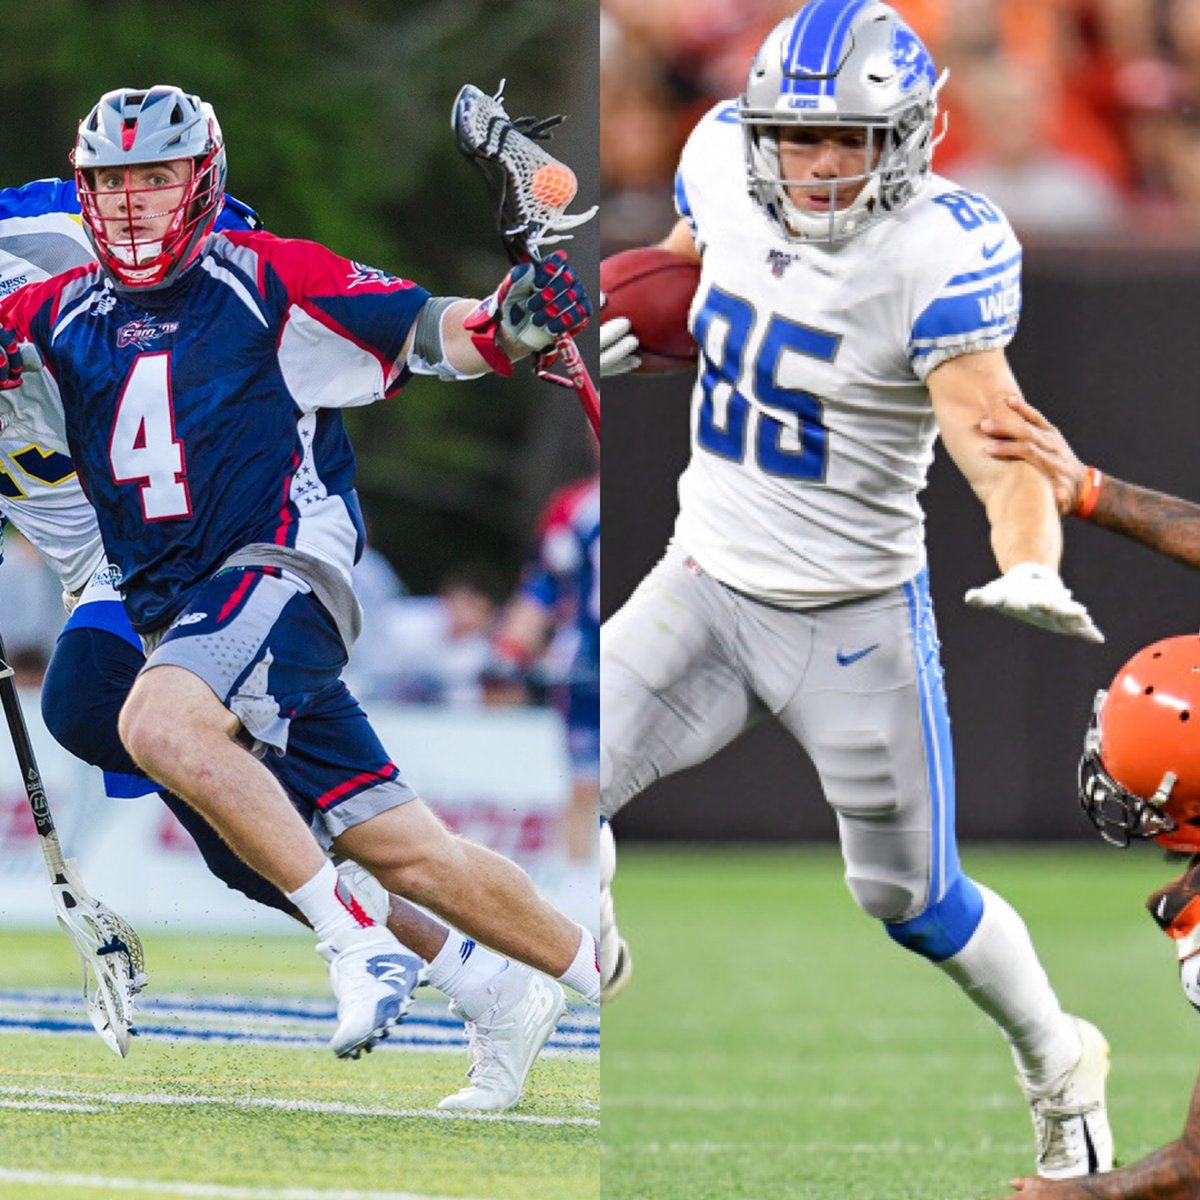 To celebrate last week's #NFLDraft and Monday's MLL Draft, we're highlighting former Cannons 2018 3rd round draft pick Tom Kennedy.   The only person to have played both pro🥍and🏈, Kennedy joined the @Lions in 2019.   The Boston Cannons 2020 Draft is Powered by @CitizensBank https://t.co/4NedNYg1xk